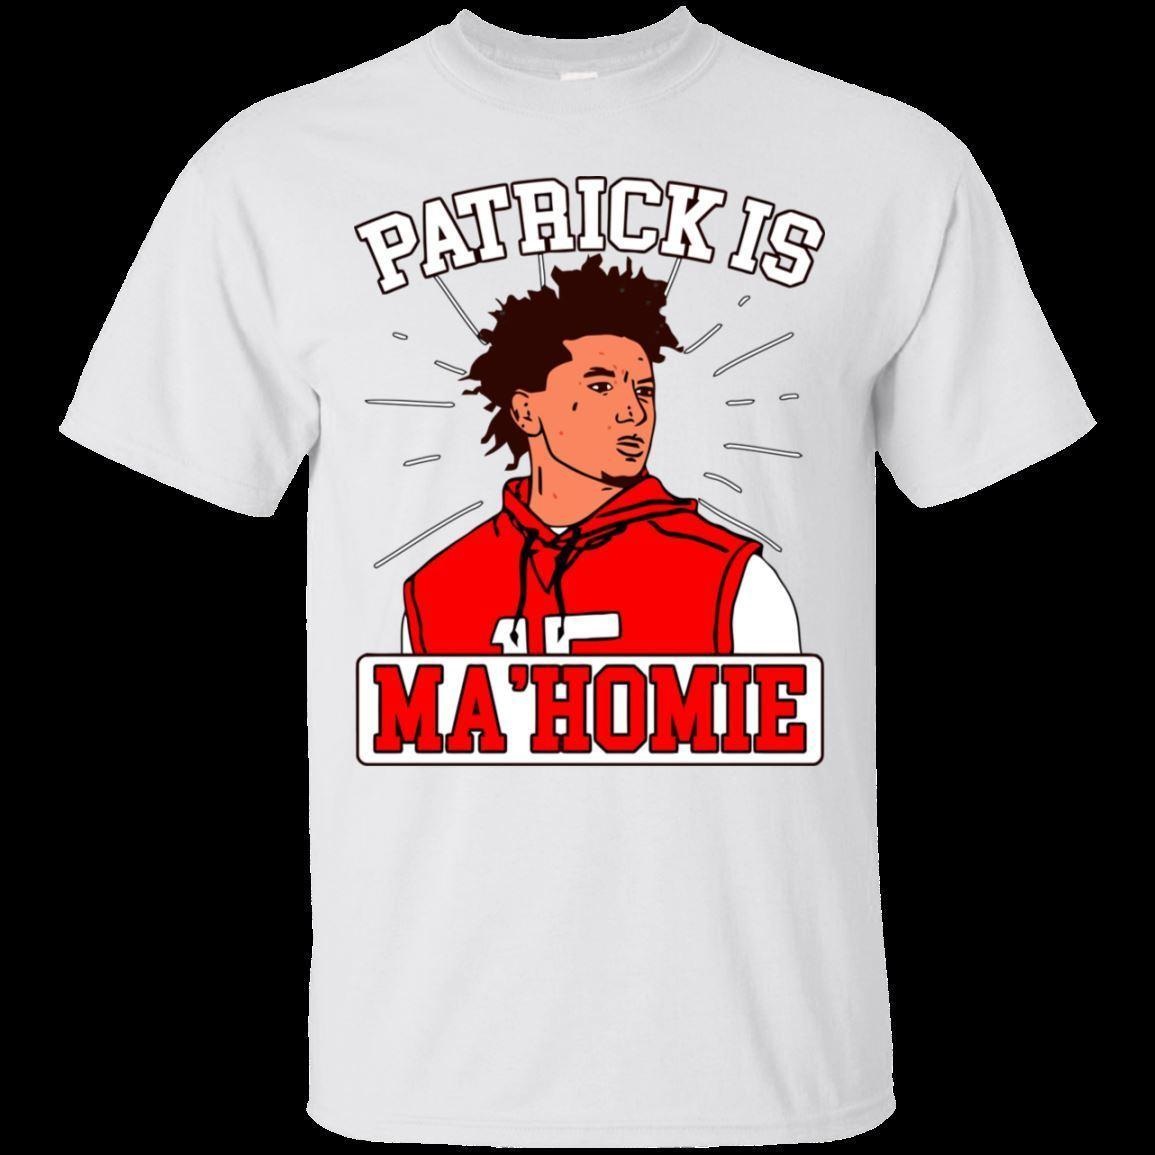 a07508d2b94 Patrick Mahomes T Shirt Patrick Is Mahomie Kansas City Chiefs Short Sleeve  S 5XL Funny Unisex Casual Tee Gift Top Awesome Shirts Cool T Shirts For Men  From ...